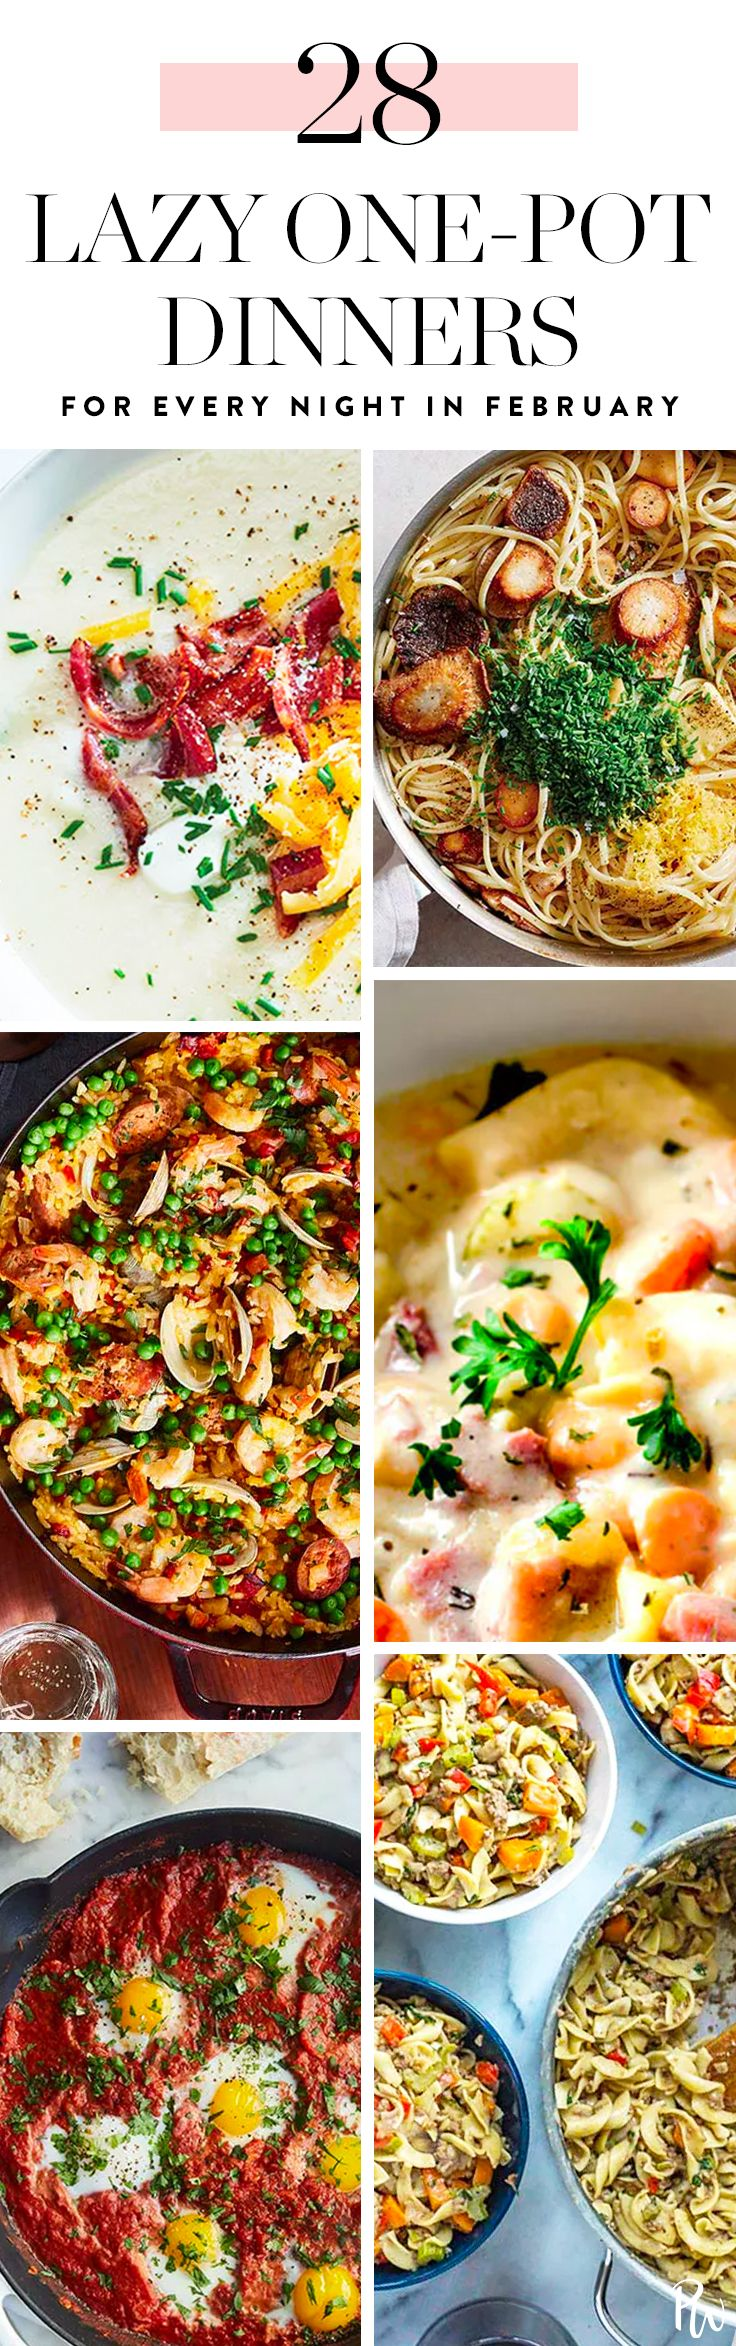 28 tasty, easy one-pot dinners to make every night in February (including Valentine's Day!)